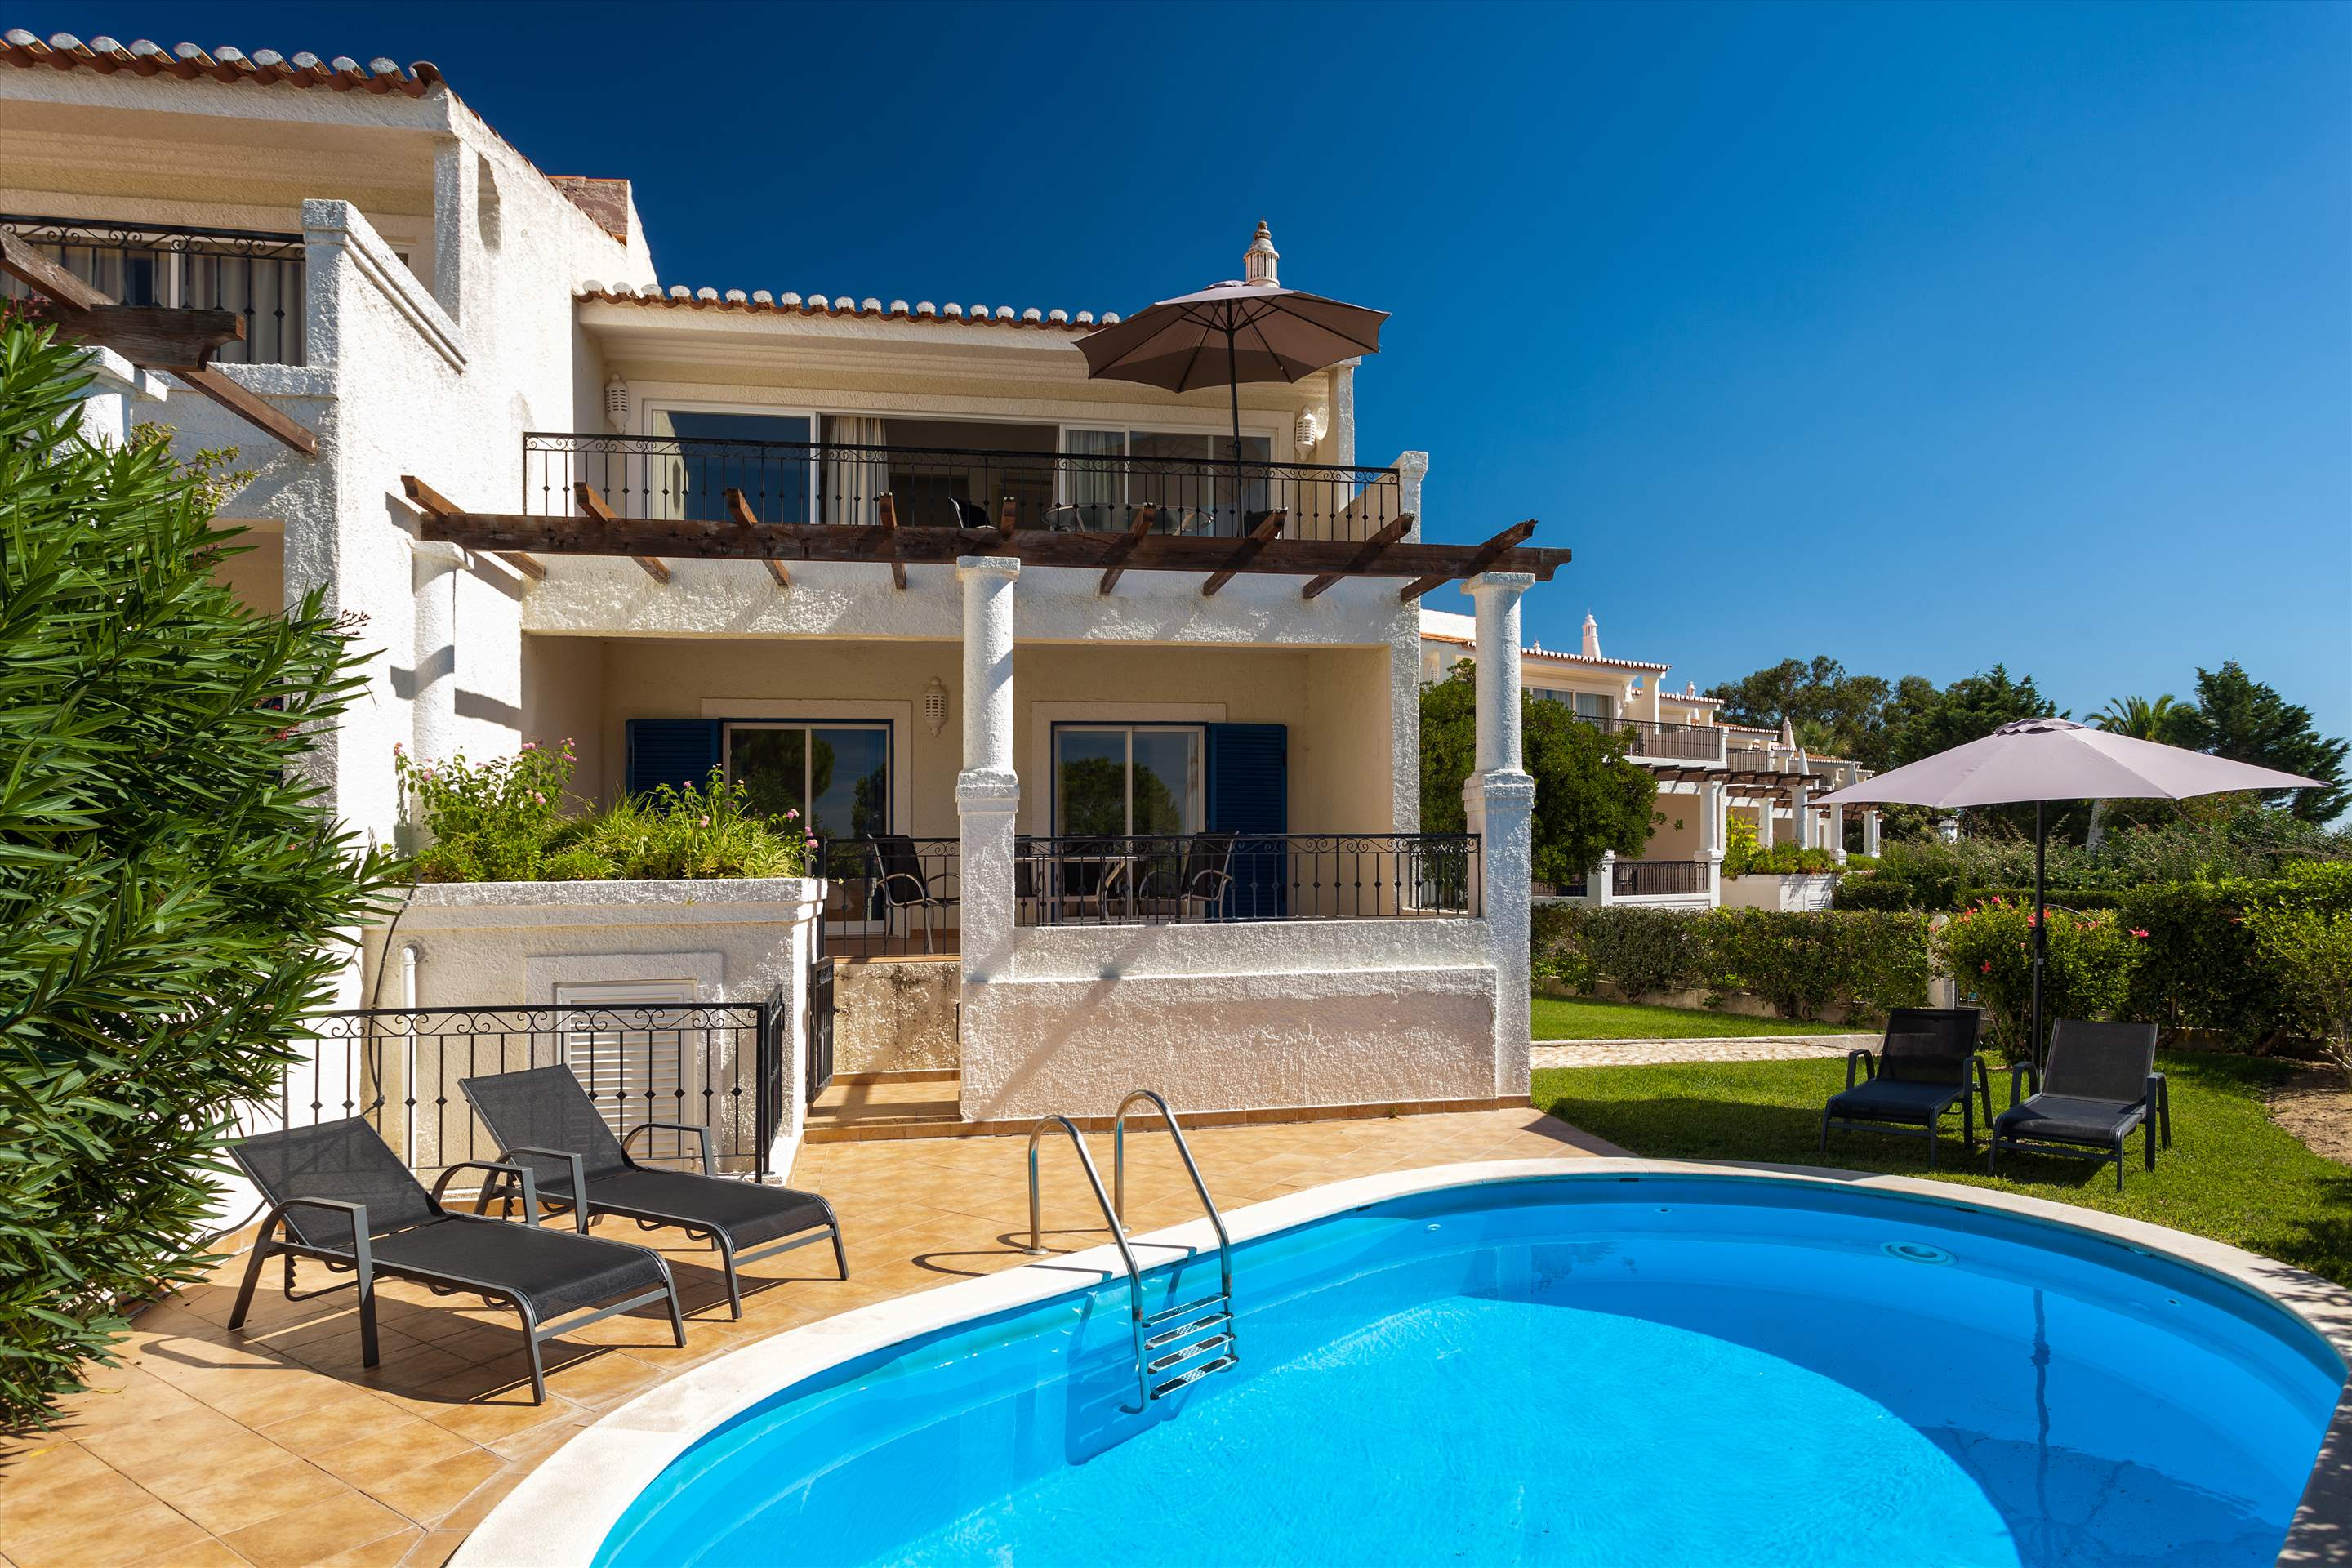 Villa Marisol, 3 bedroom villa in Vale do Lobo, Algarve Photo #1